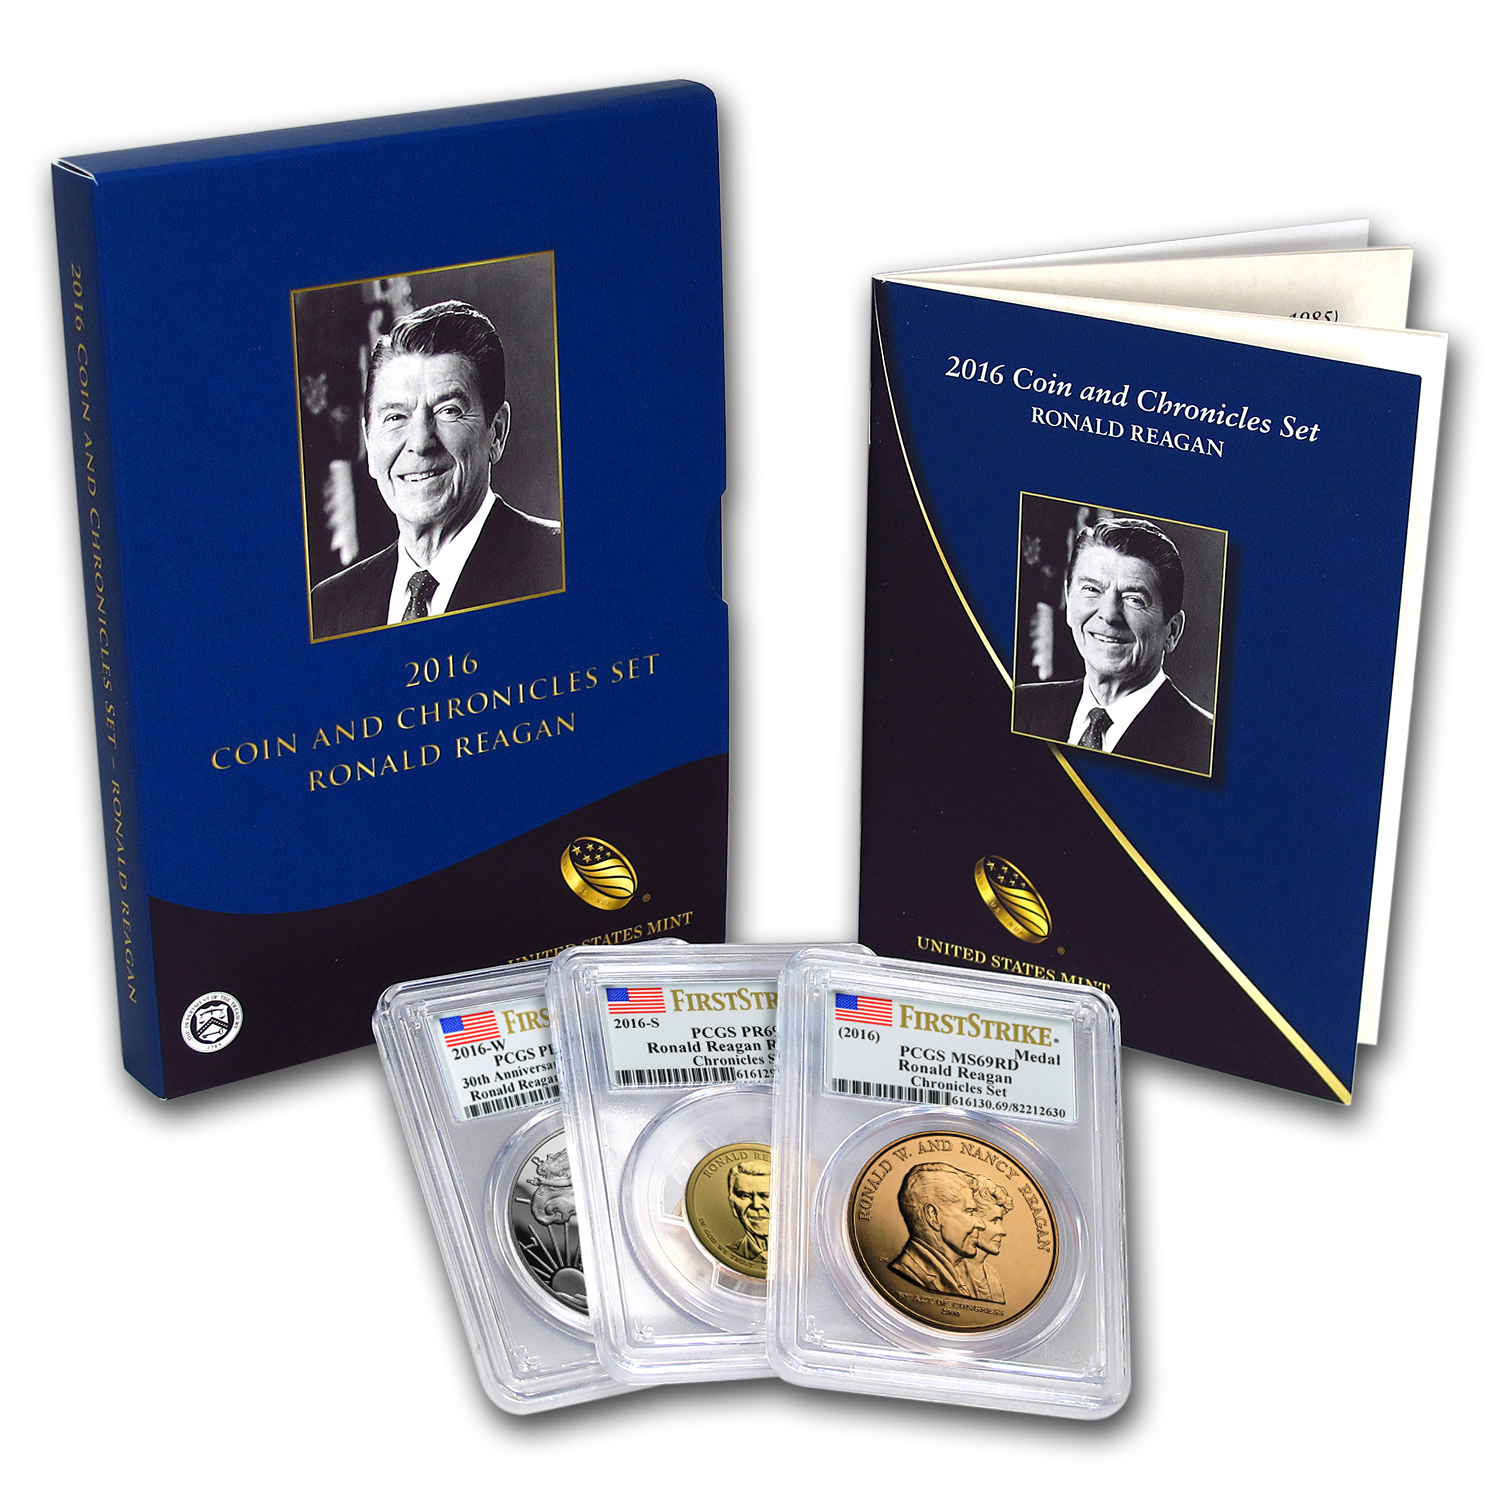 2016 Ronald Reagan Coin/Chronicles Set PR-69, PR-69, PR-69 PCGS